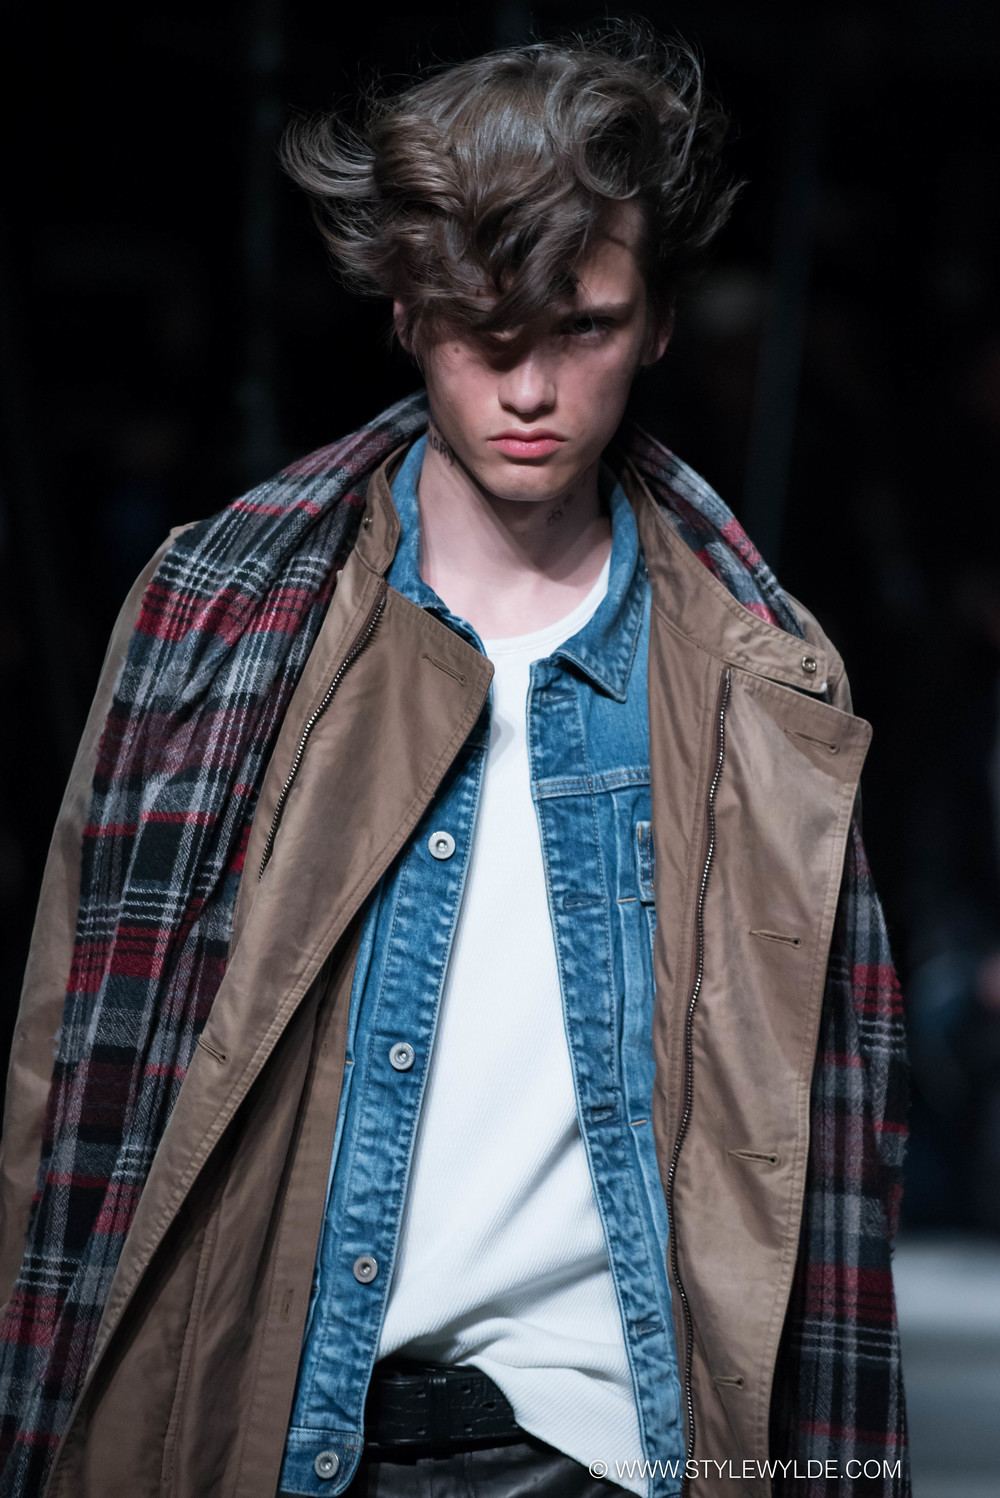 stylewylde_5351_pour_les_hommes_fw_2016-23.jpg